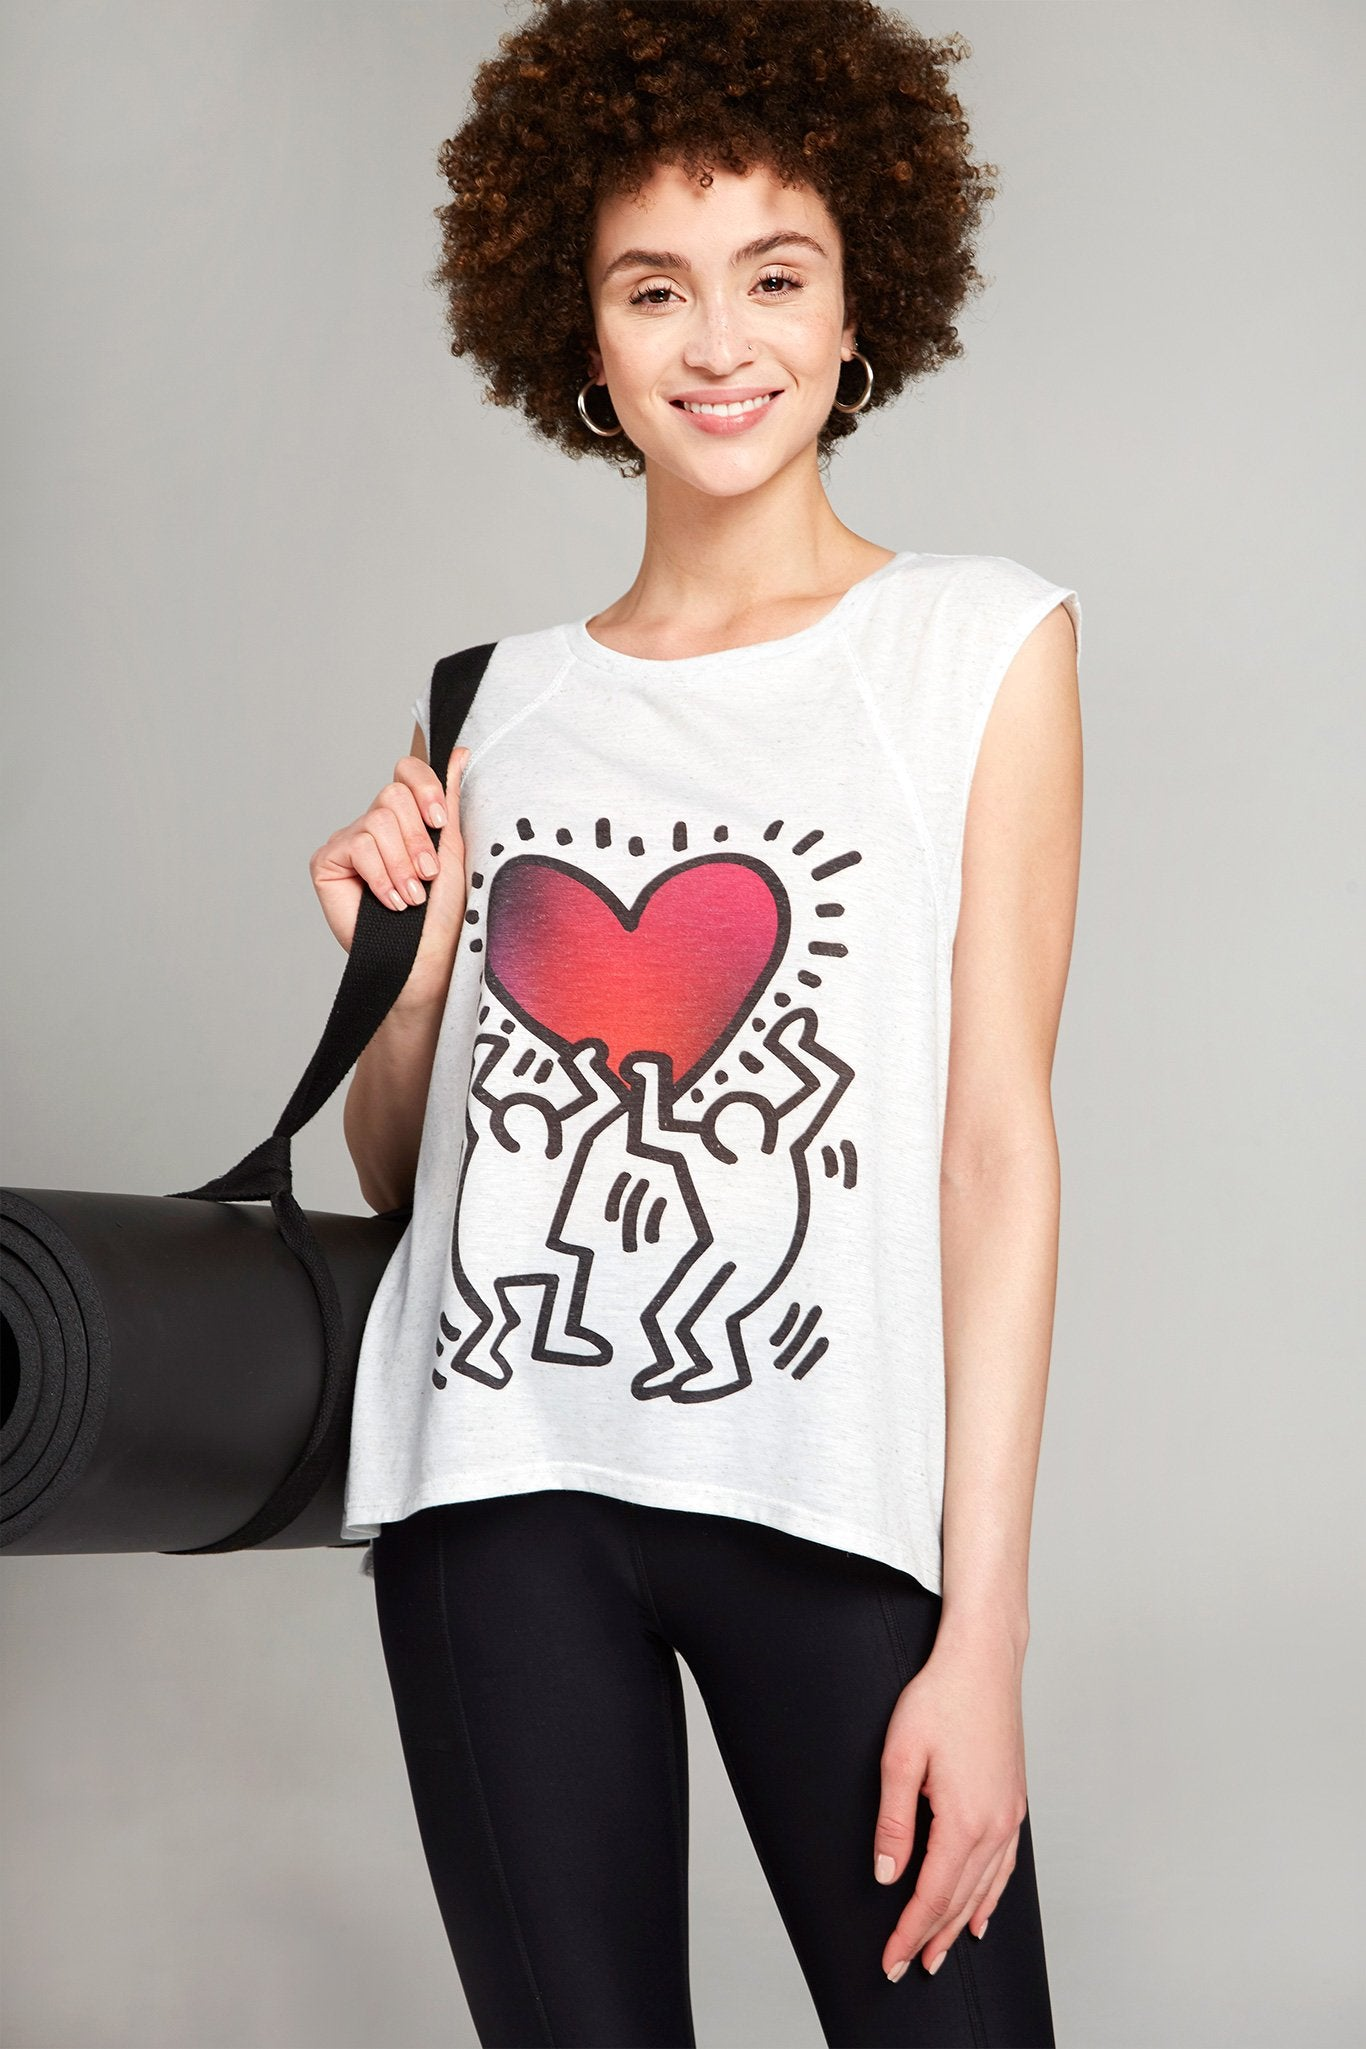 Keith Haring Uplifted Heart Tee by Terez